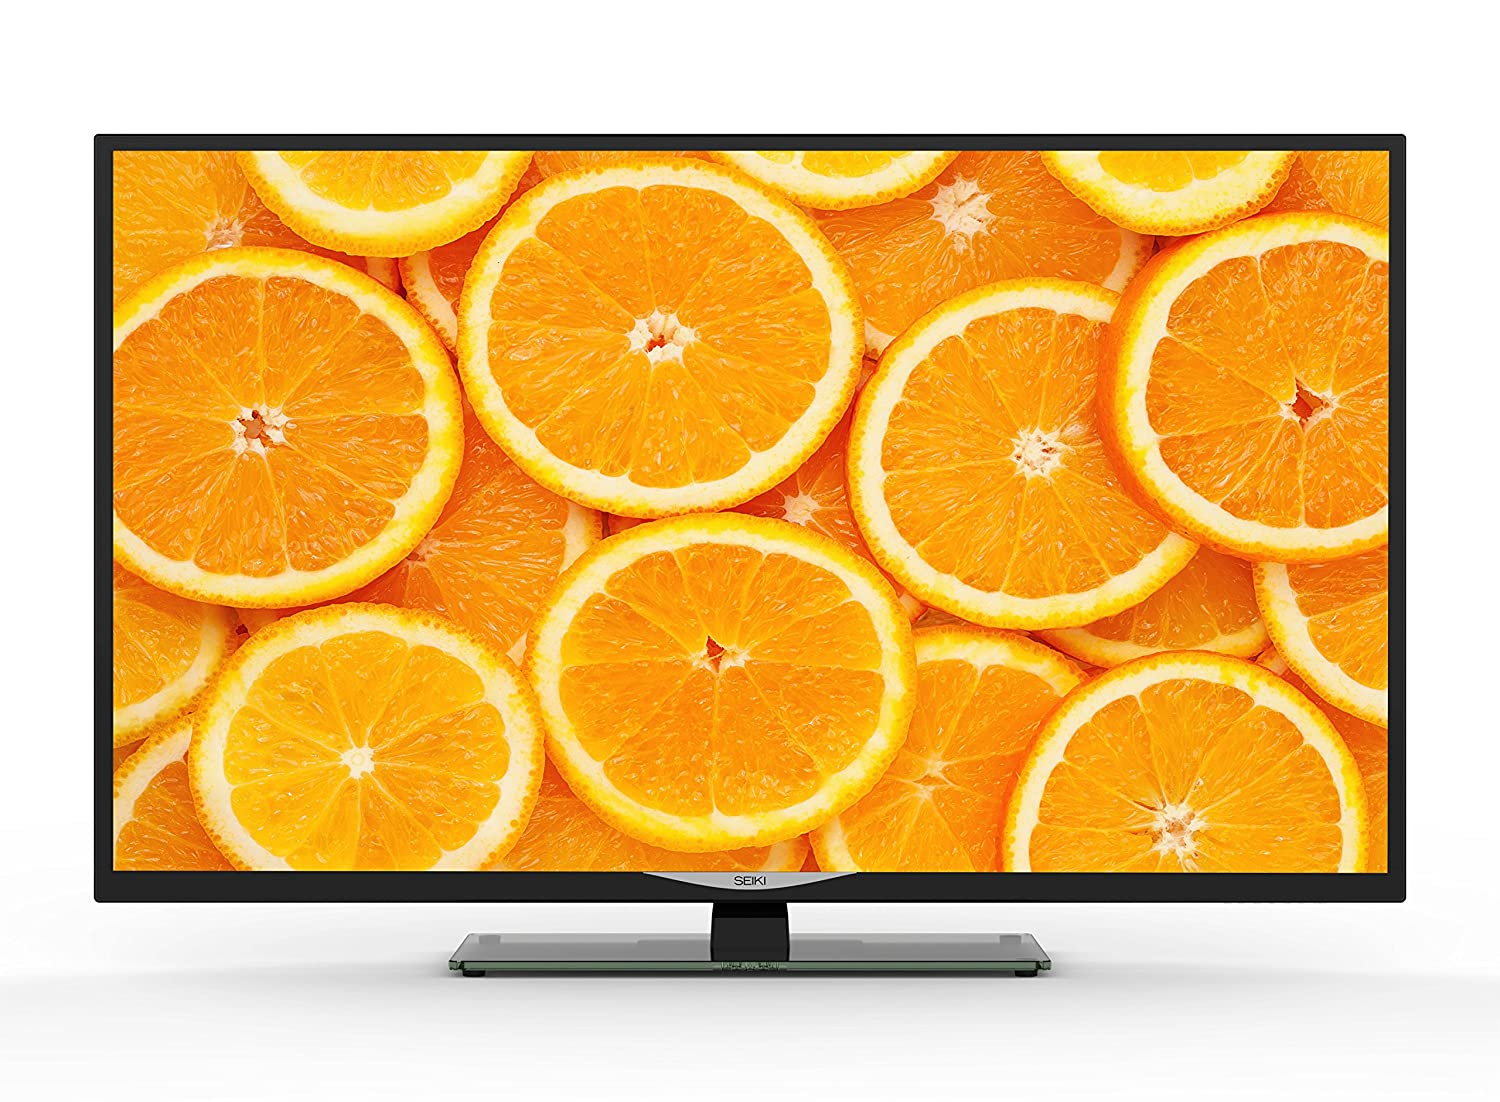 SEIKI SE50FY35 50-Inch LED TV Review